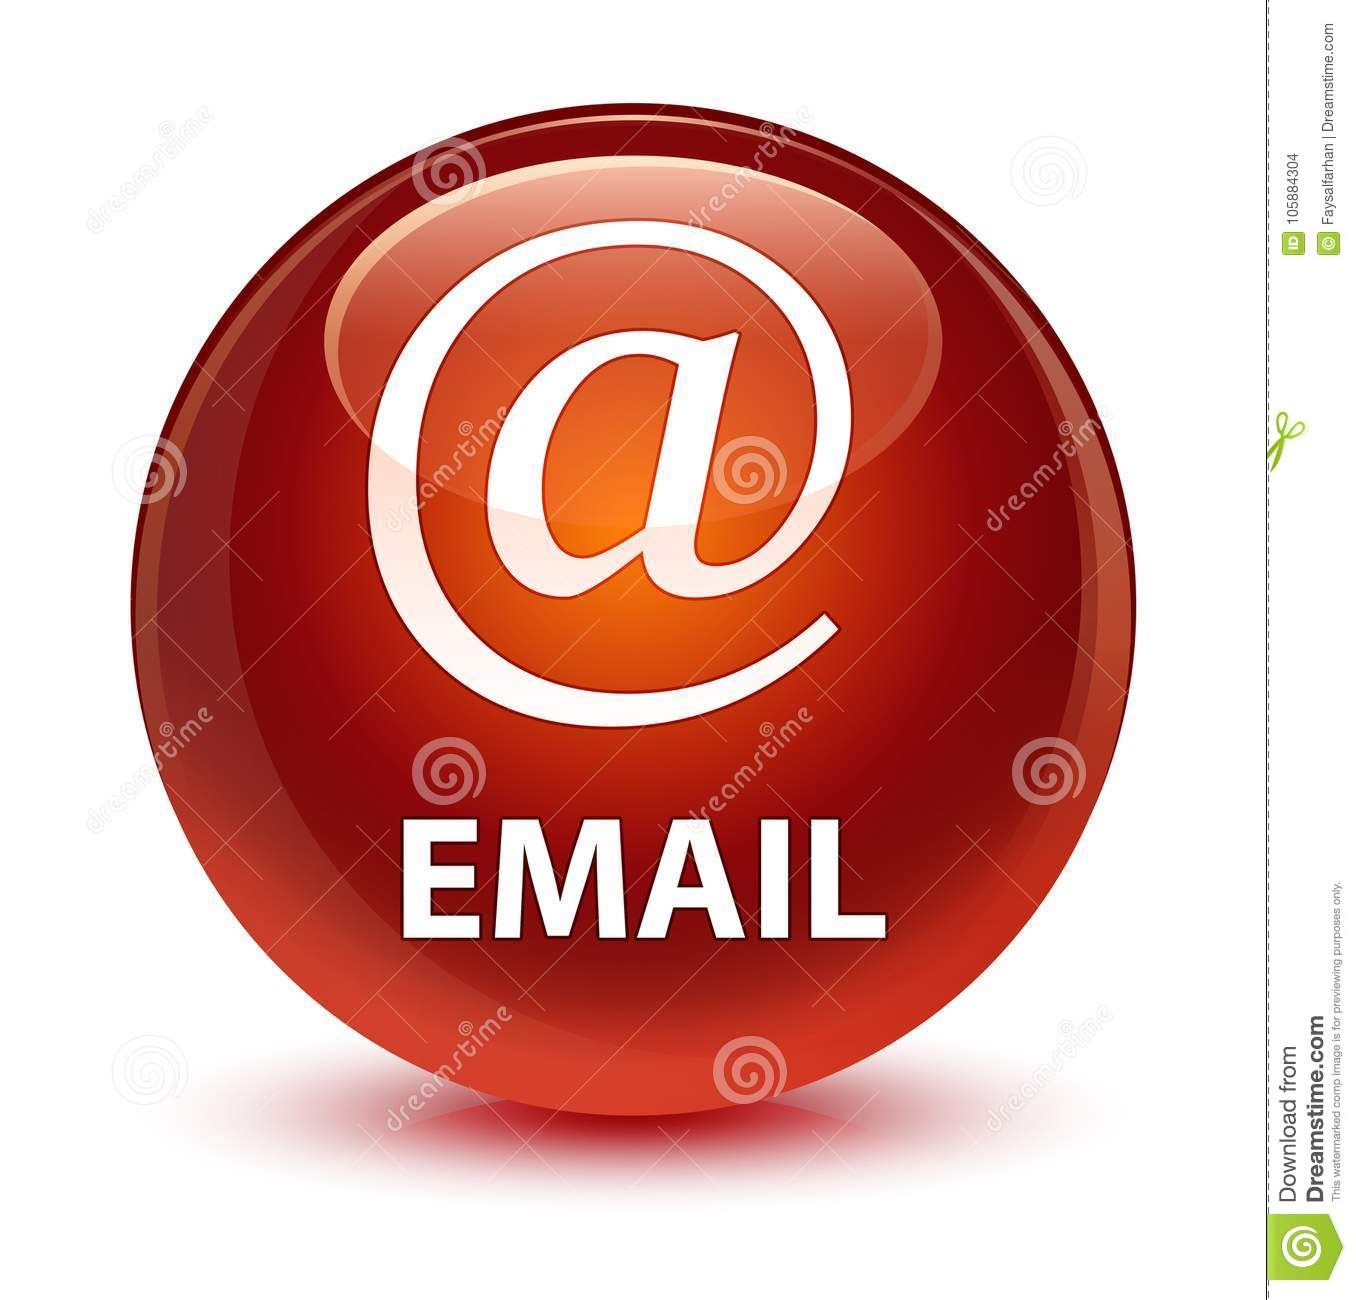 Email (address icon) glassy brown round button